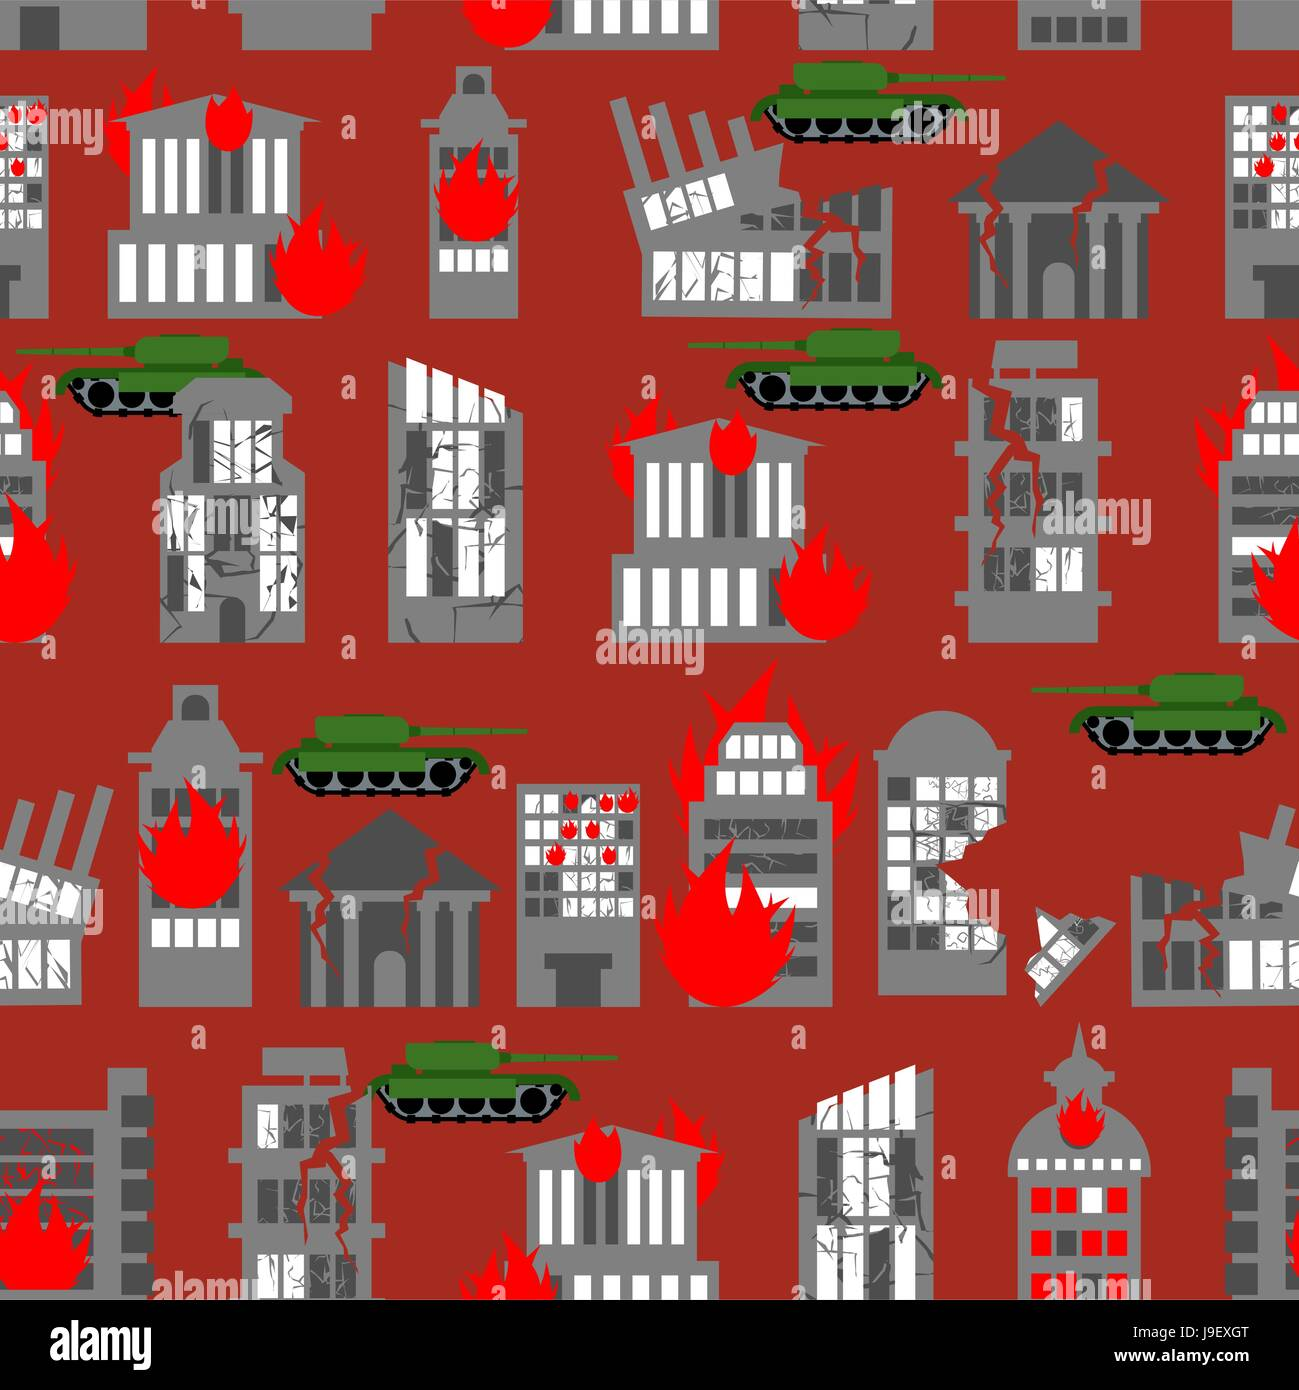 War seamless pattern. Ruined city. Tanks in town. Skyscrapers and public buildings destroyed. Background to danger. - Stock Vector